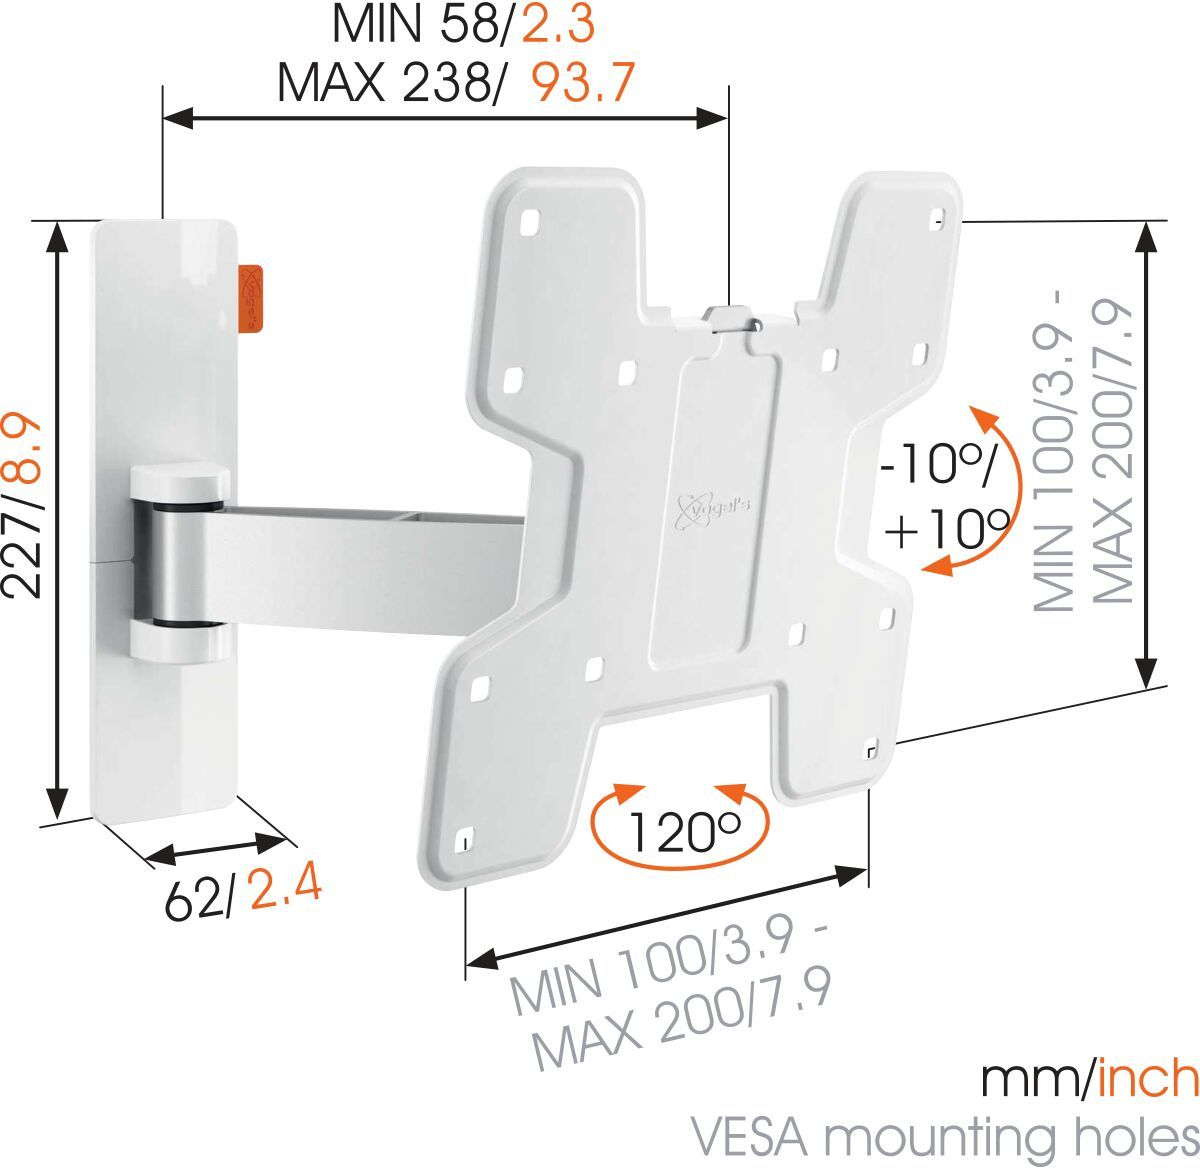 Vogel's WALL 2125 Full-Motion TV Wall Mount (white) - Suitable for 19 up to 40 inch TVs - Motion (up to 120°) - Tilt -10°/+10° - Dimensions